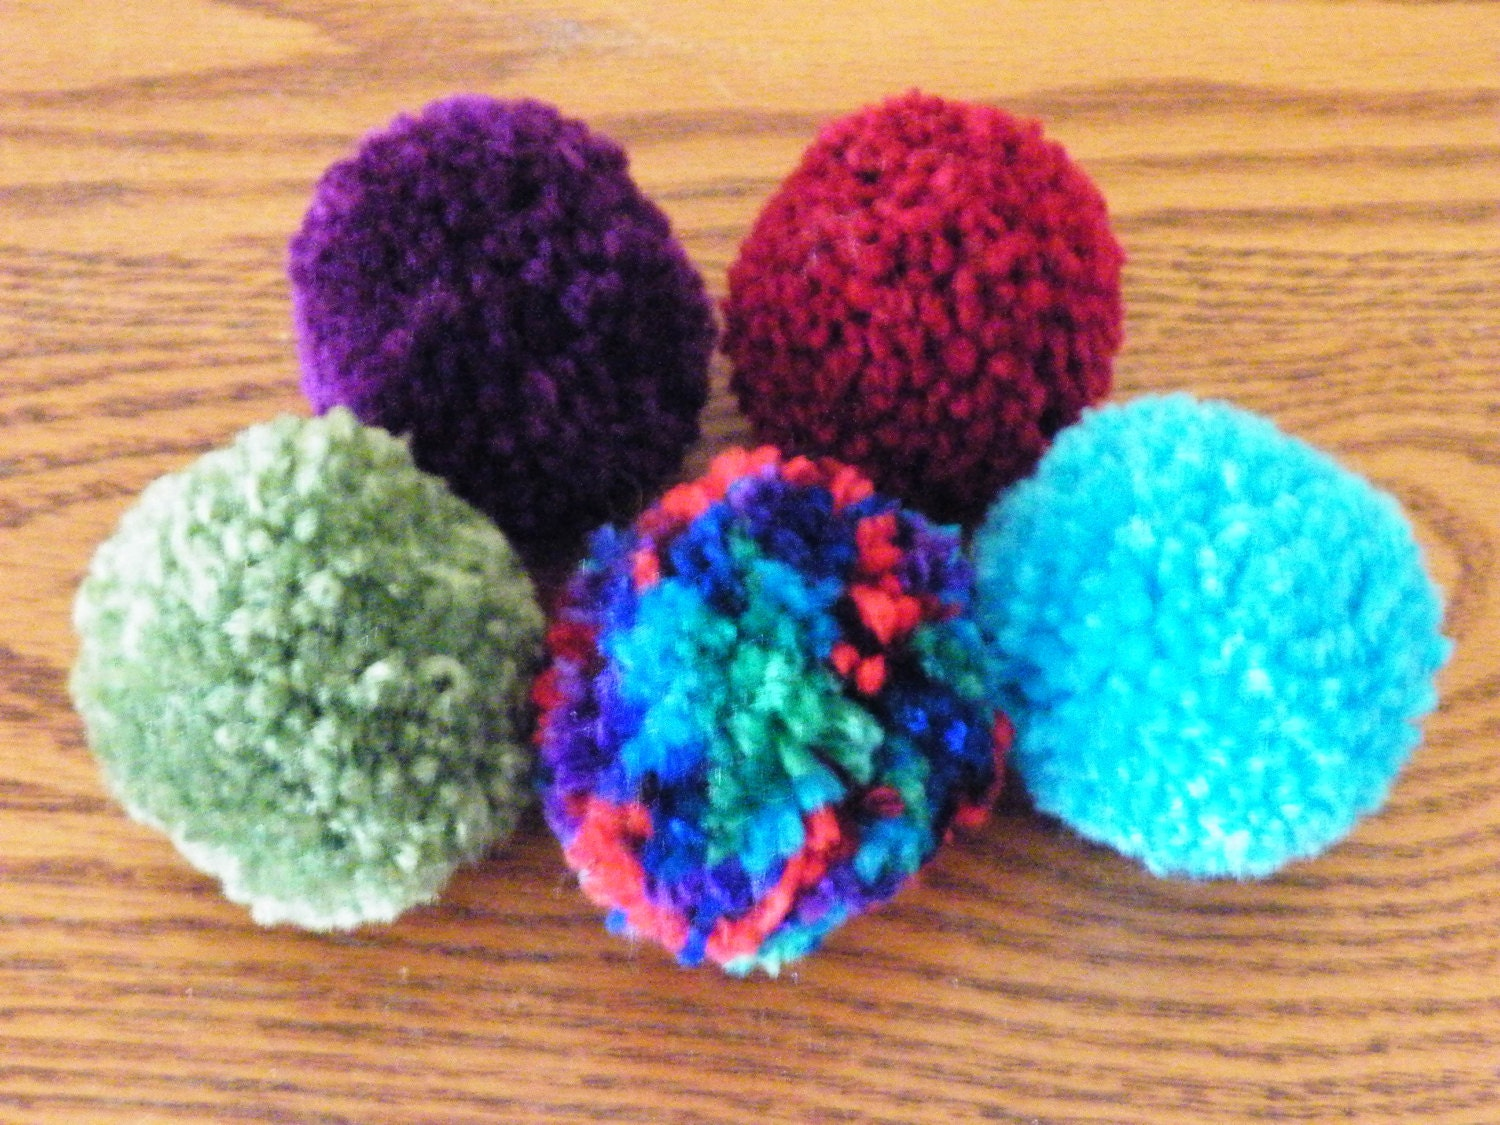 5 handmade 2 inch yarn pom pom cat toy balls sprayed with